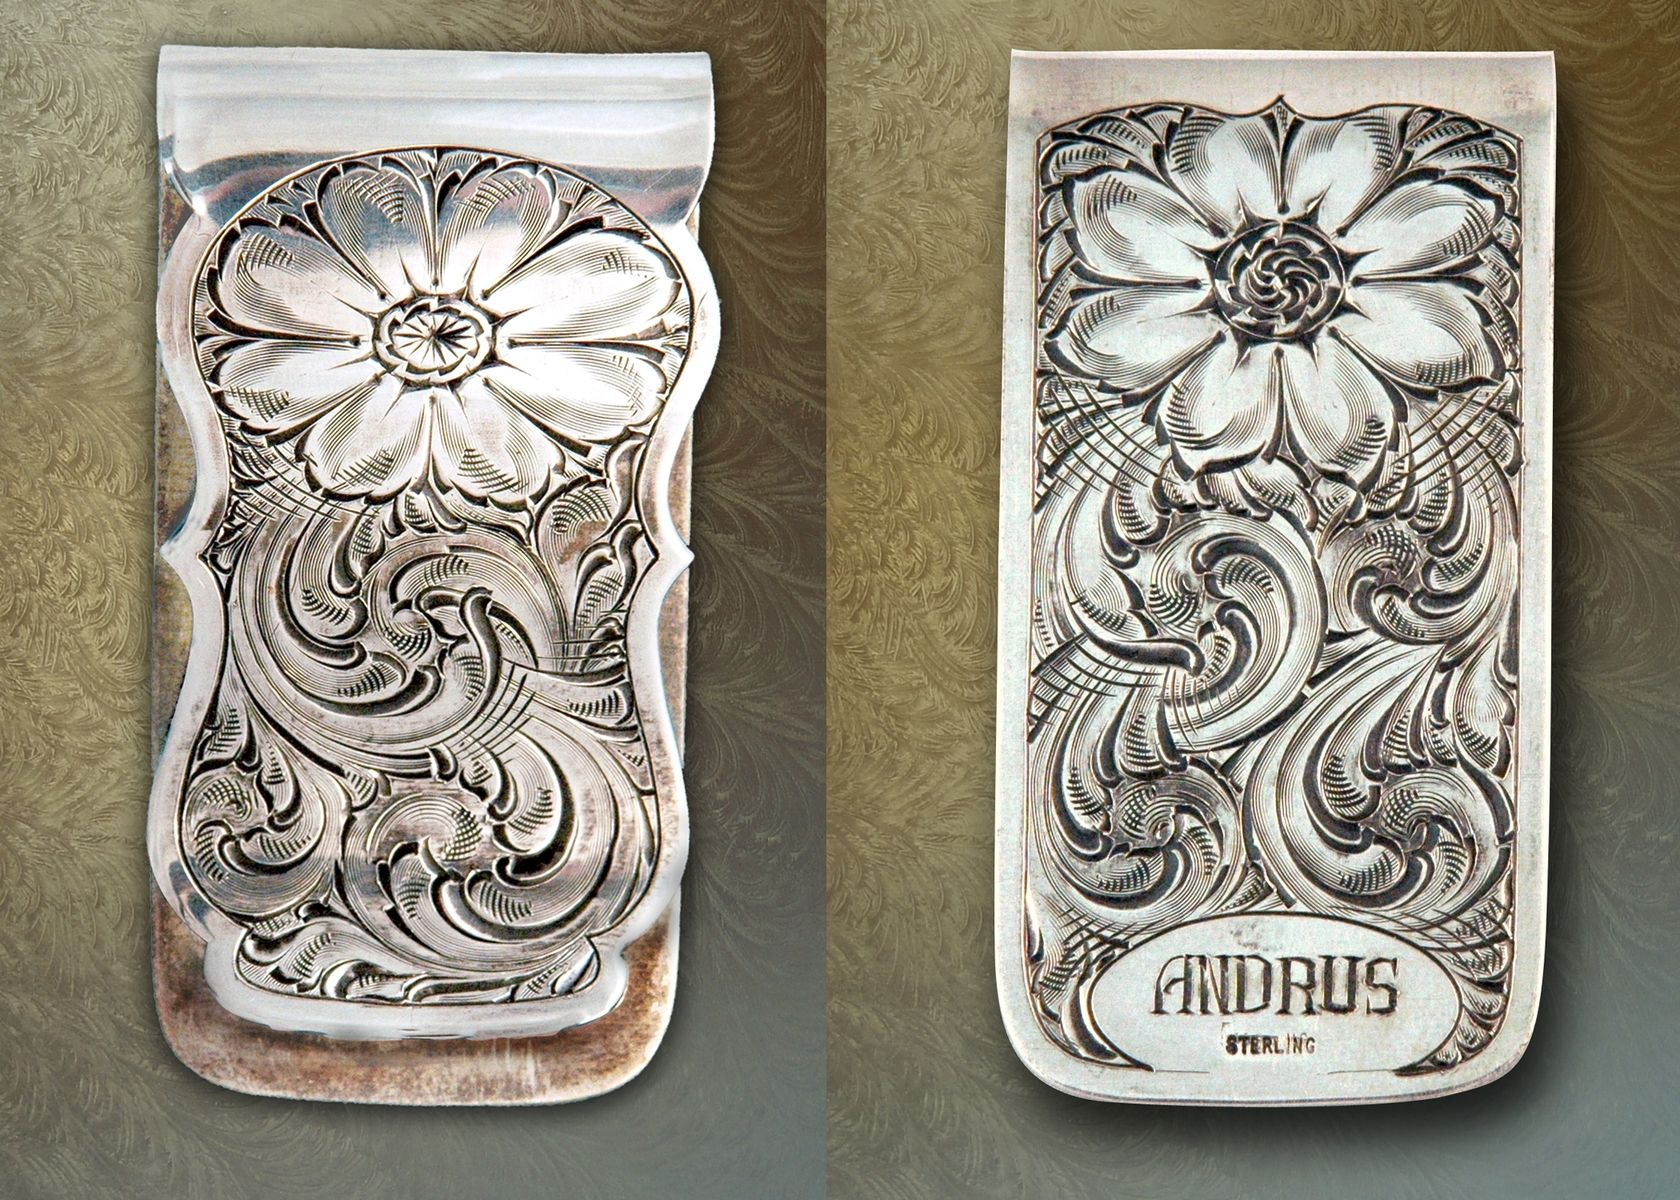 Sterling Silver Money Clip, Hand-Engraved